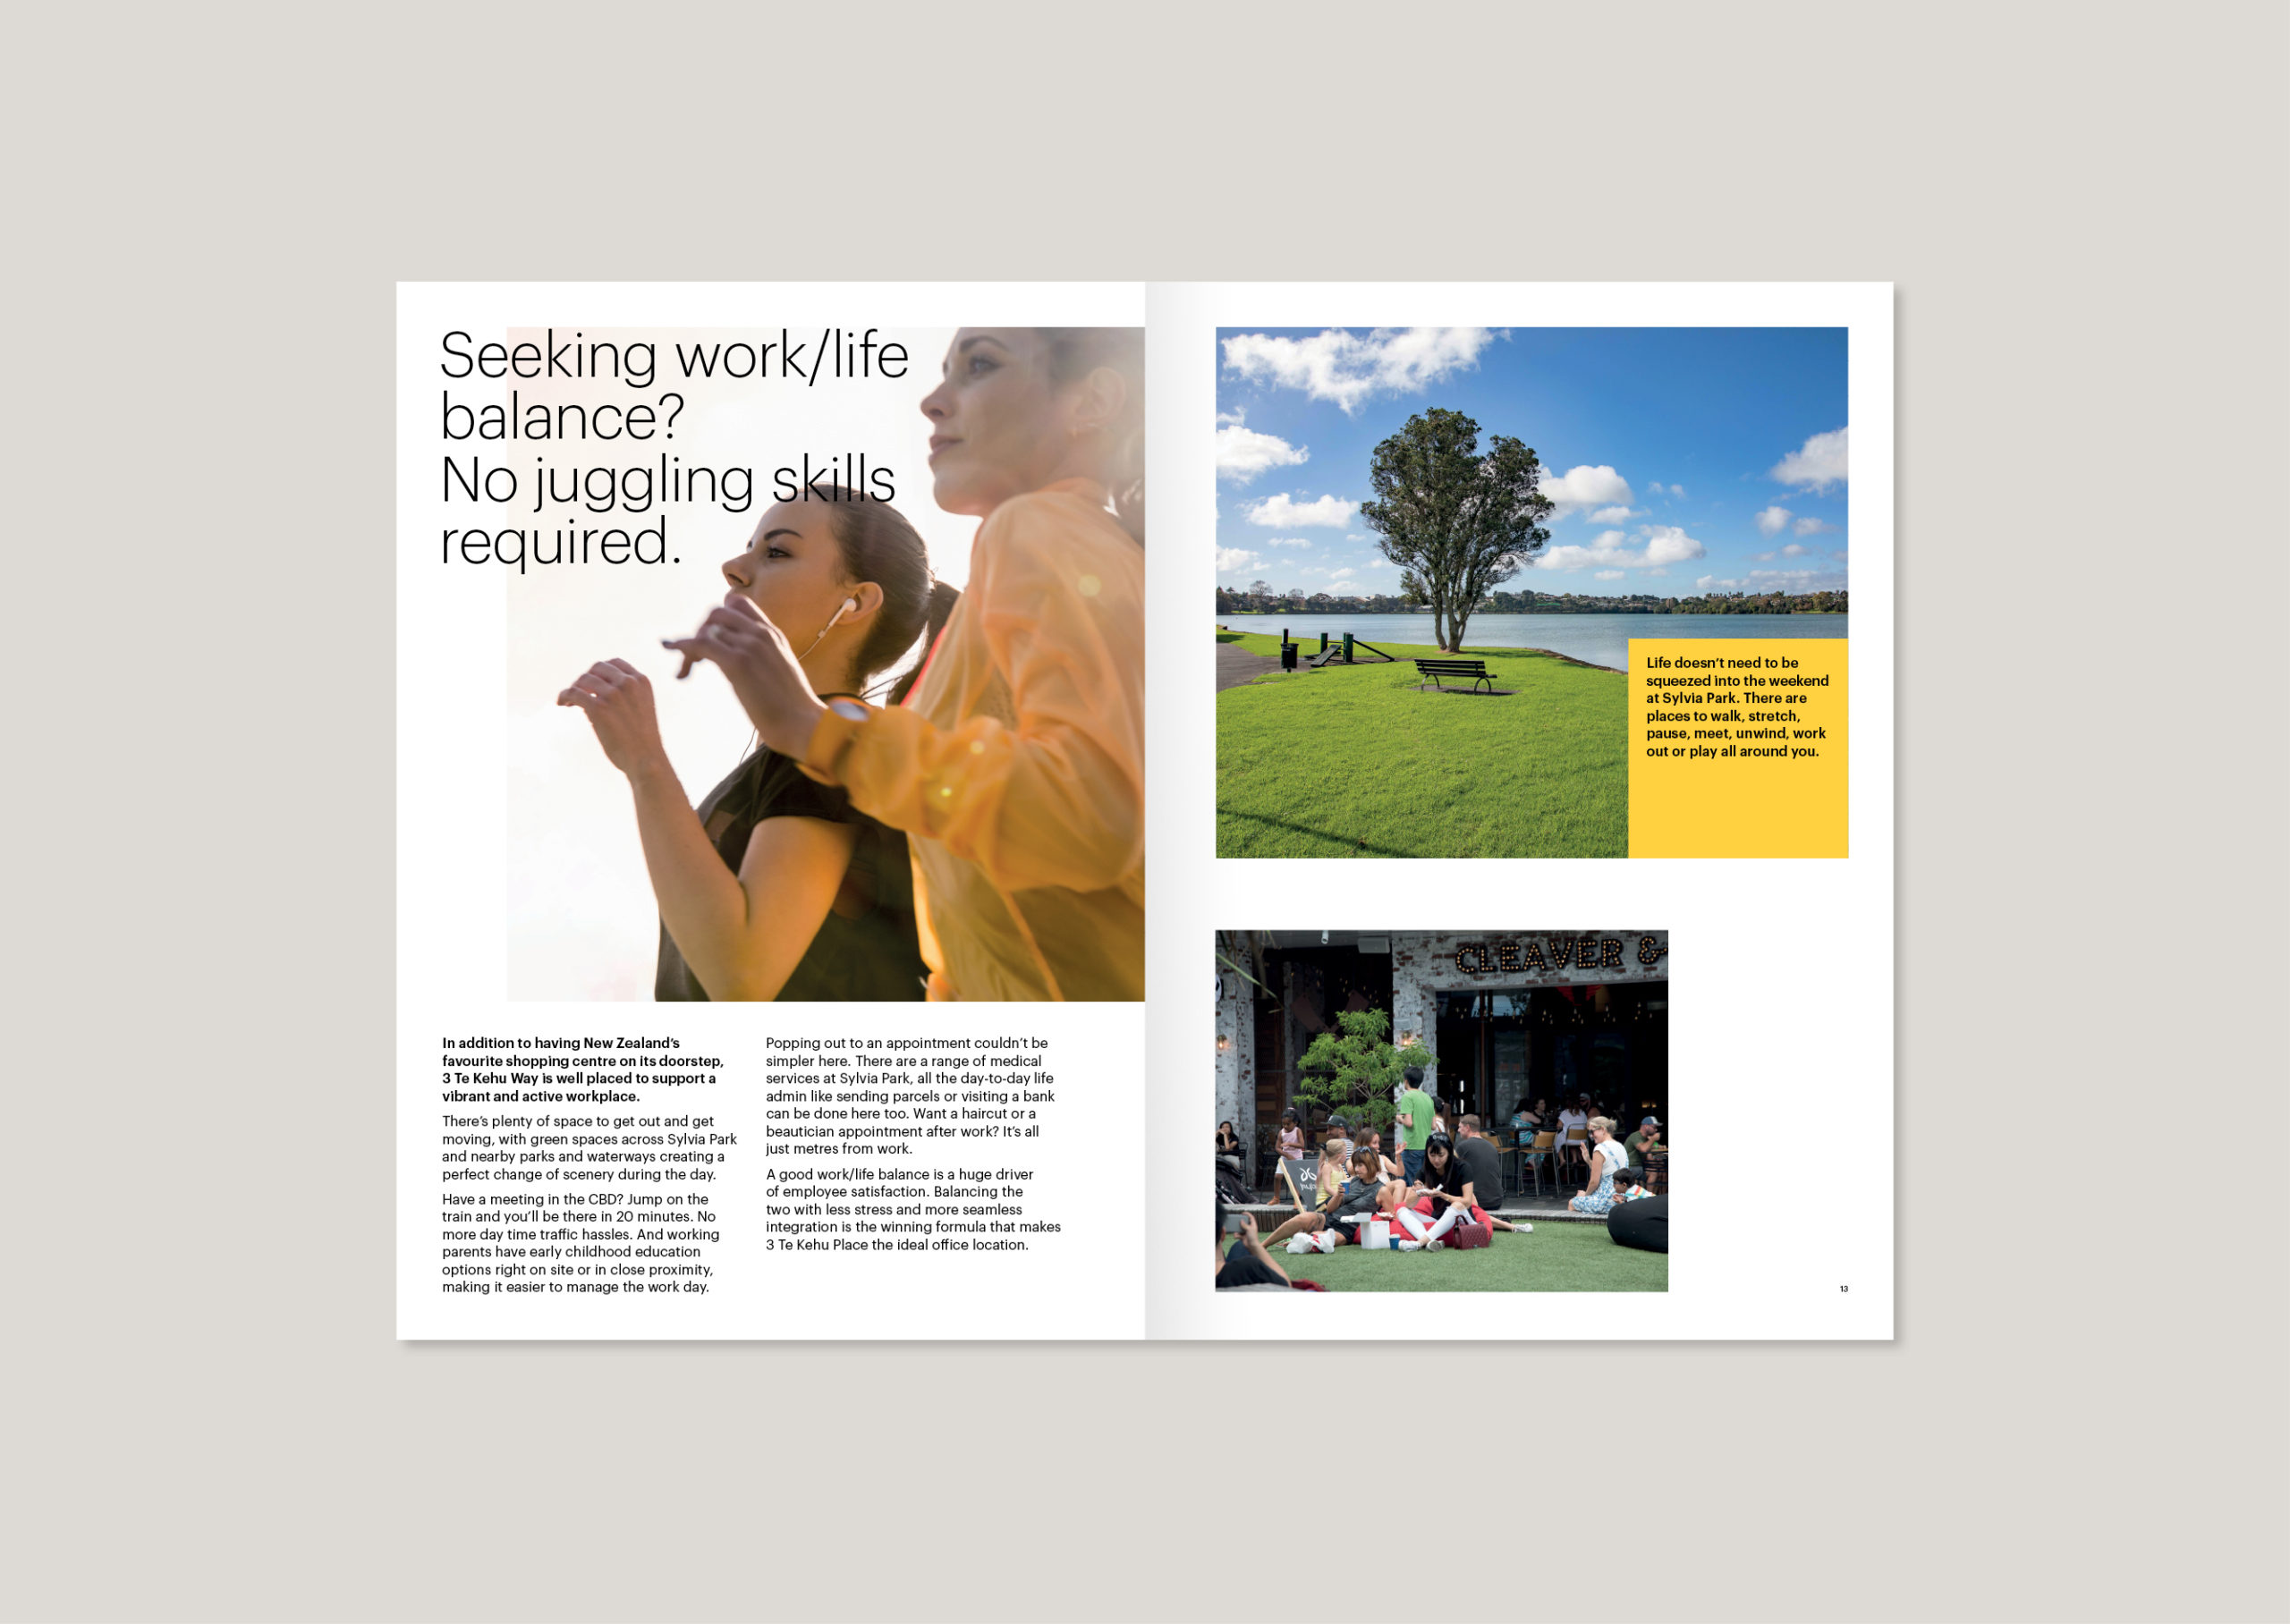 Photographs showing Close up of women jogging in sun, Panmure basin and people sitting outside relaxing at Sylvia Park shine,